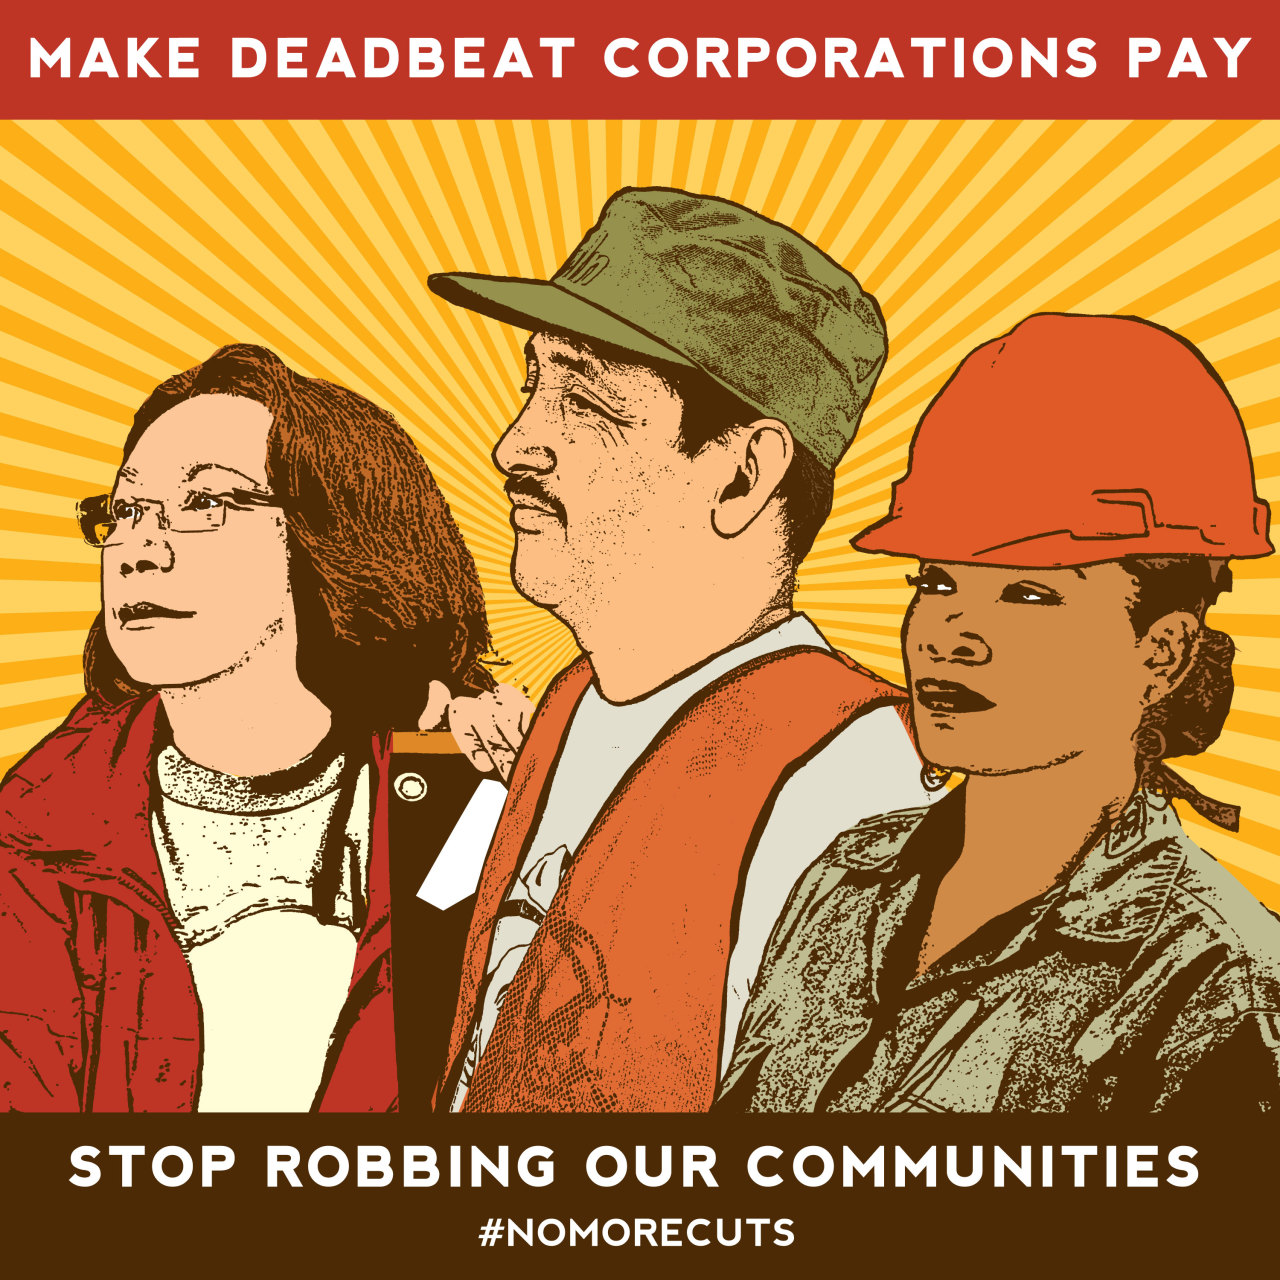 "artstrike:  Make Deadbeat Corporations Pay. Stop Robbing Our Communities. by Melanie Cervantes #nomorecuts #fiscalcliff  Our country isn't broke - It's being robbed. Stand up against cuts to vital programs and demand the wealthy pay their fair share.You've probably heard about the political game called ""The Fiscal Cliff."" But, it's actually a Fiscal Bluff — a self inflicted crisis designed to create urgency to make us believe our nation is broke and that we must cut vital programs. This is false and we won't stand for it. Corrupt billionaires, tax-dodging corporations, and those who serve them have manufactured this crisis and are refusing to pay their fair share. Join us in telling them:#NOMORECUTS.   SHARE this work with your friends and family and MAKE your own! As a creative community we can provide the tools people need to speak out and protect our most precious public programs from further deterioration."